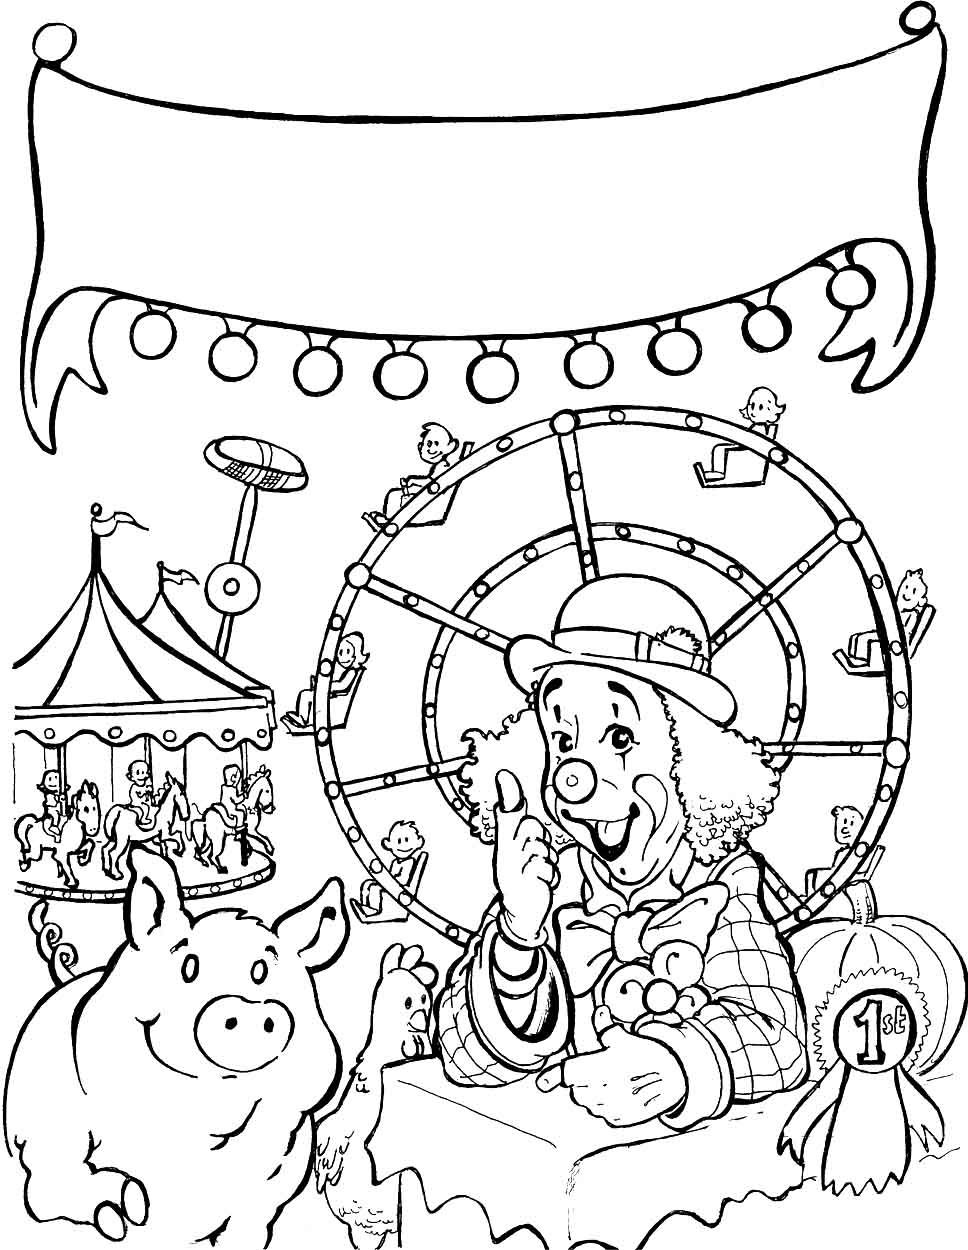 Pig At The Fair 968 1250 Coloring Contest Color Coloring Pages